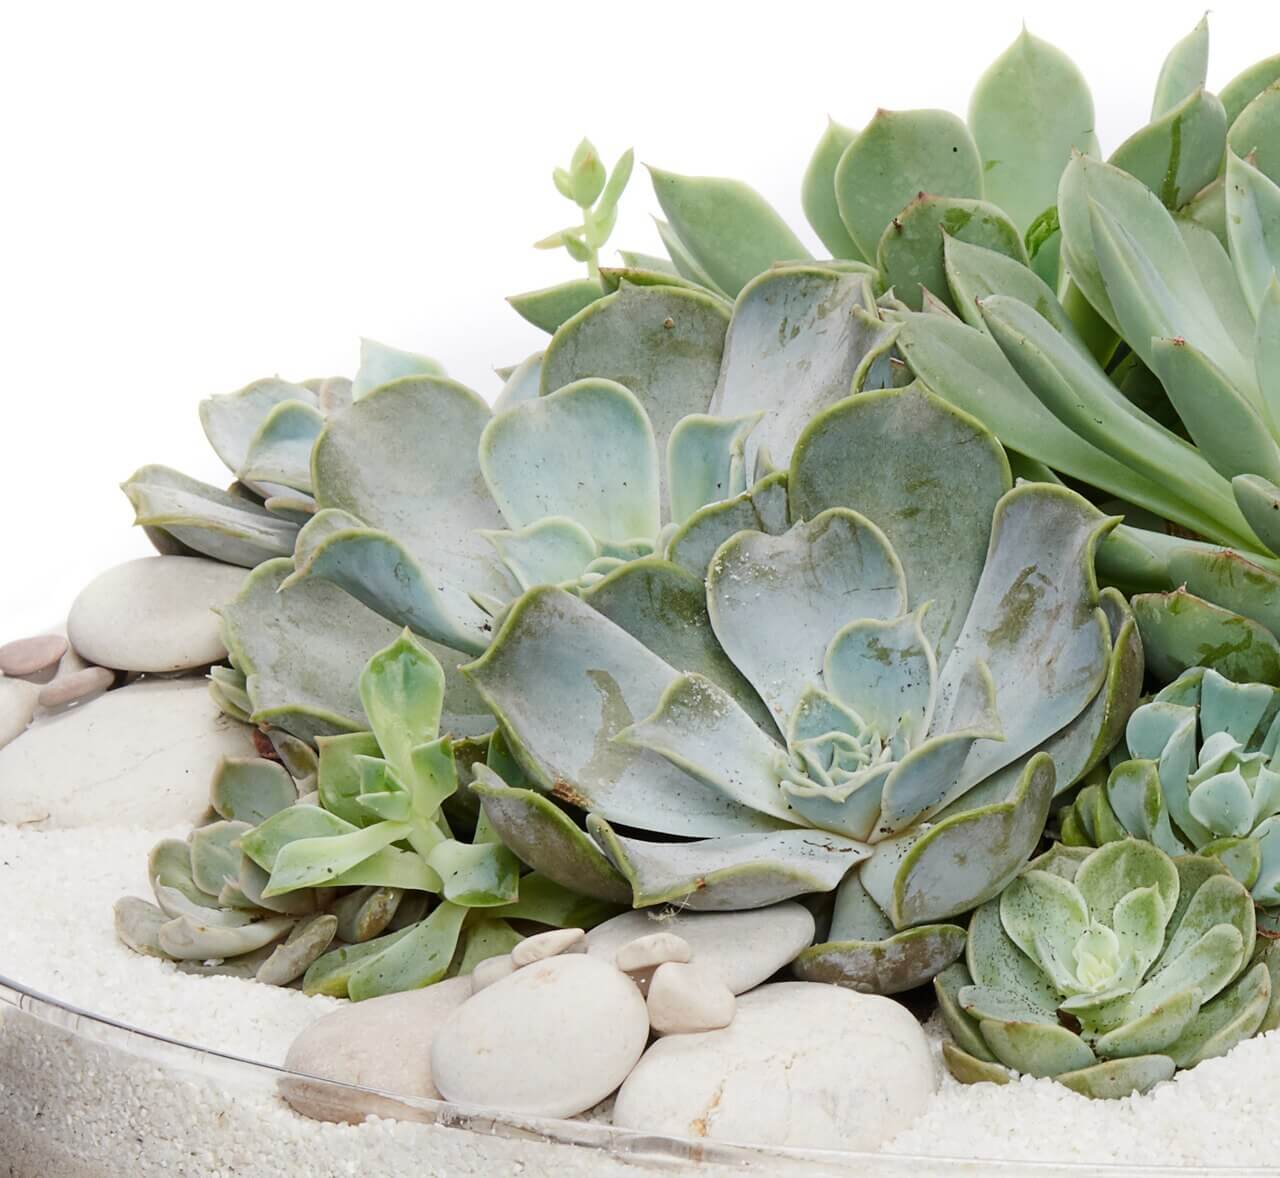 Succulent Care Guide: 3 Simple Instructions To Follow